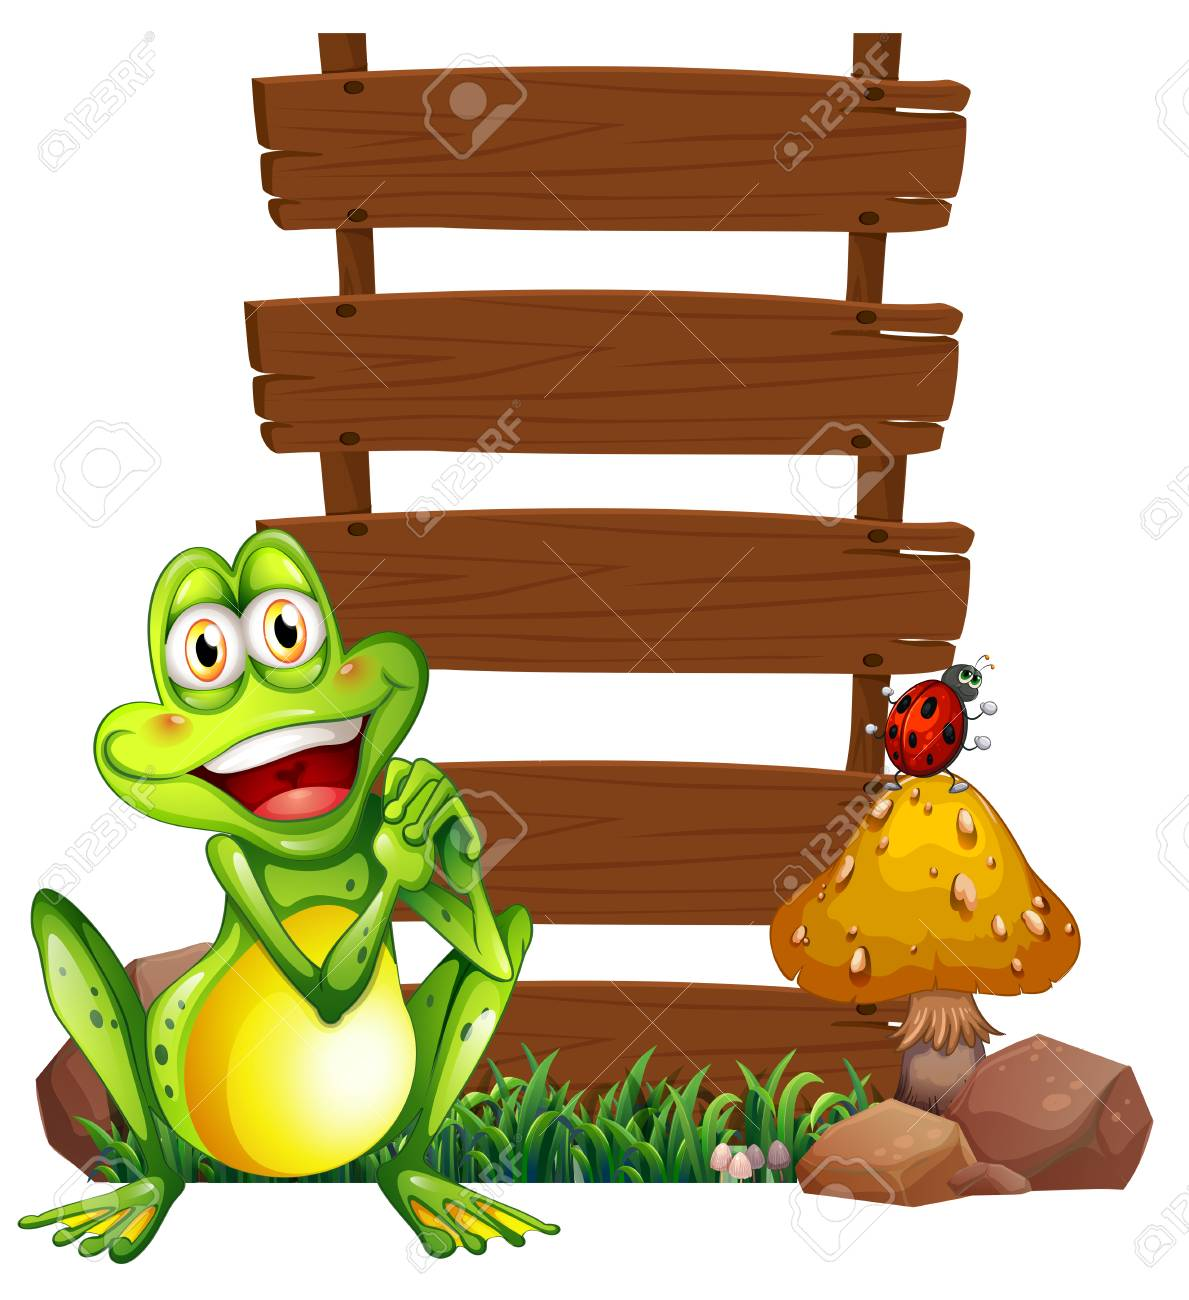 Illustration of a smiling frog in front of the empty signboards on a white background Stock Vector - 26316836